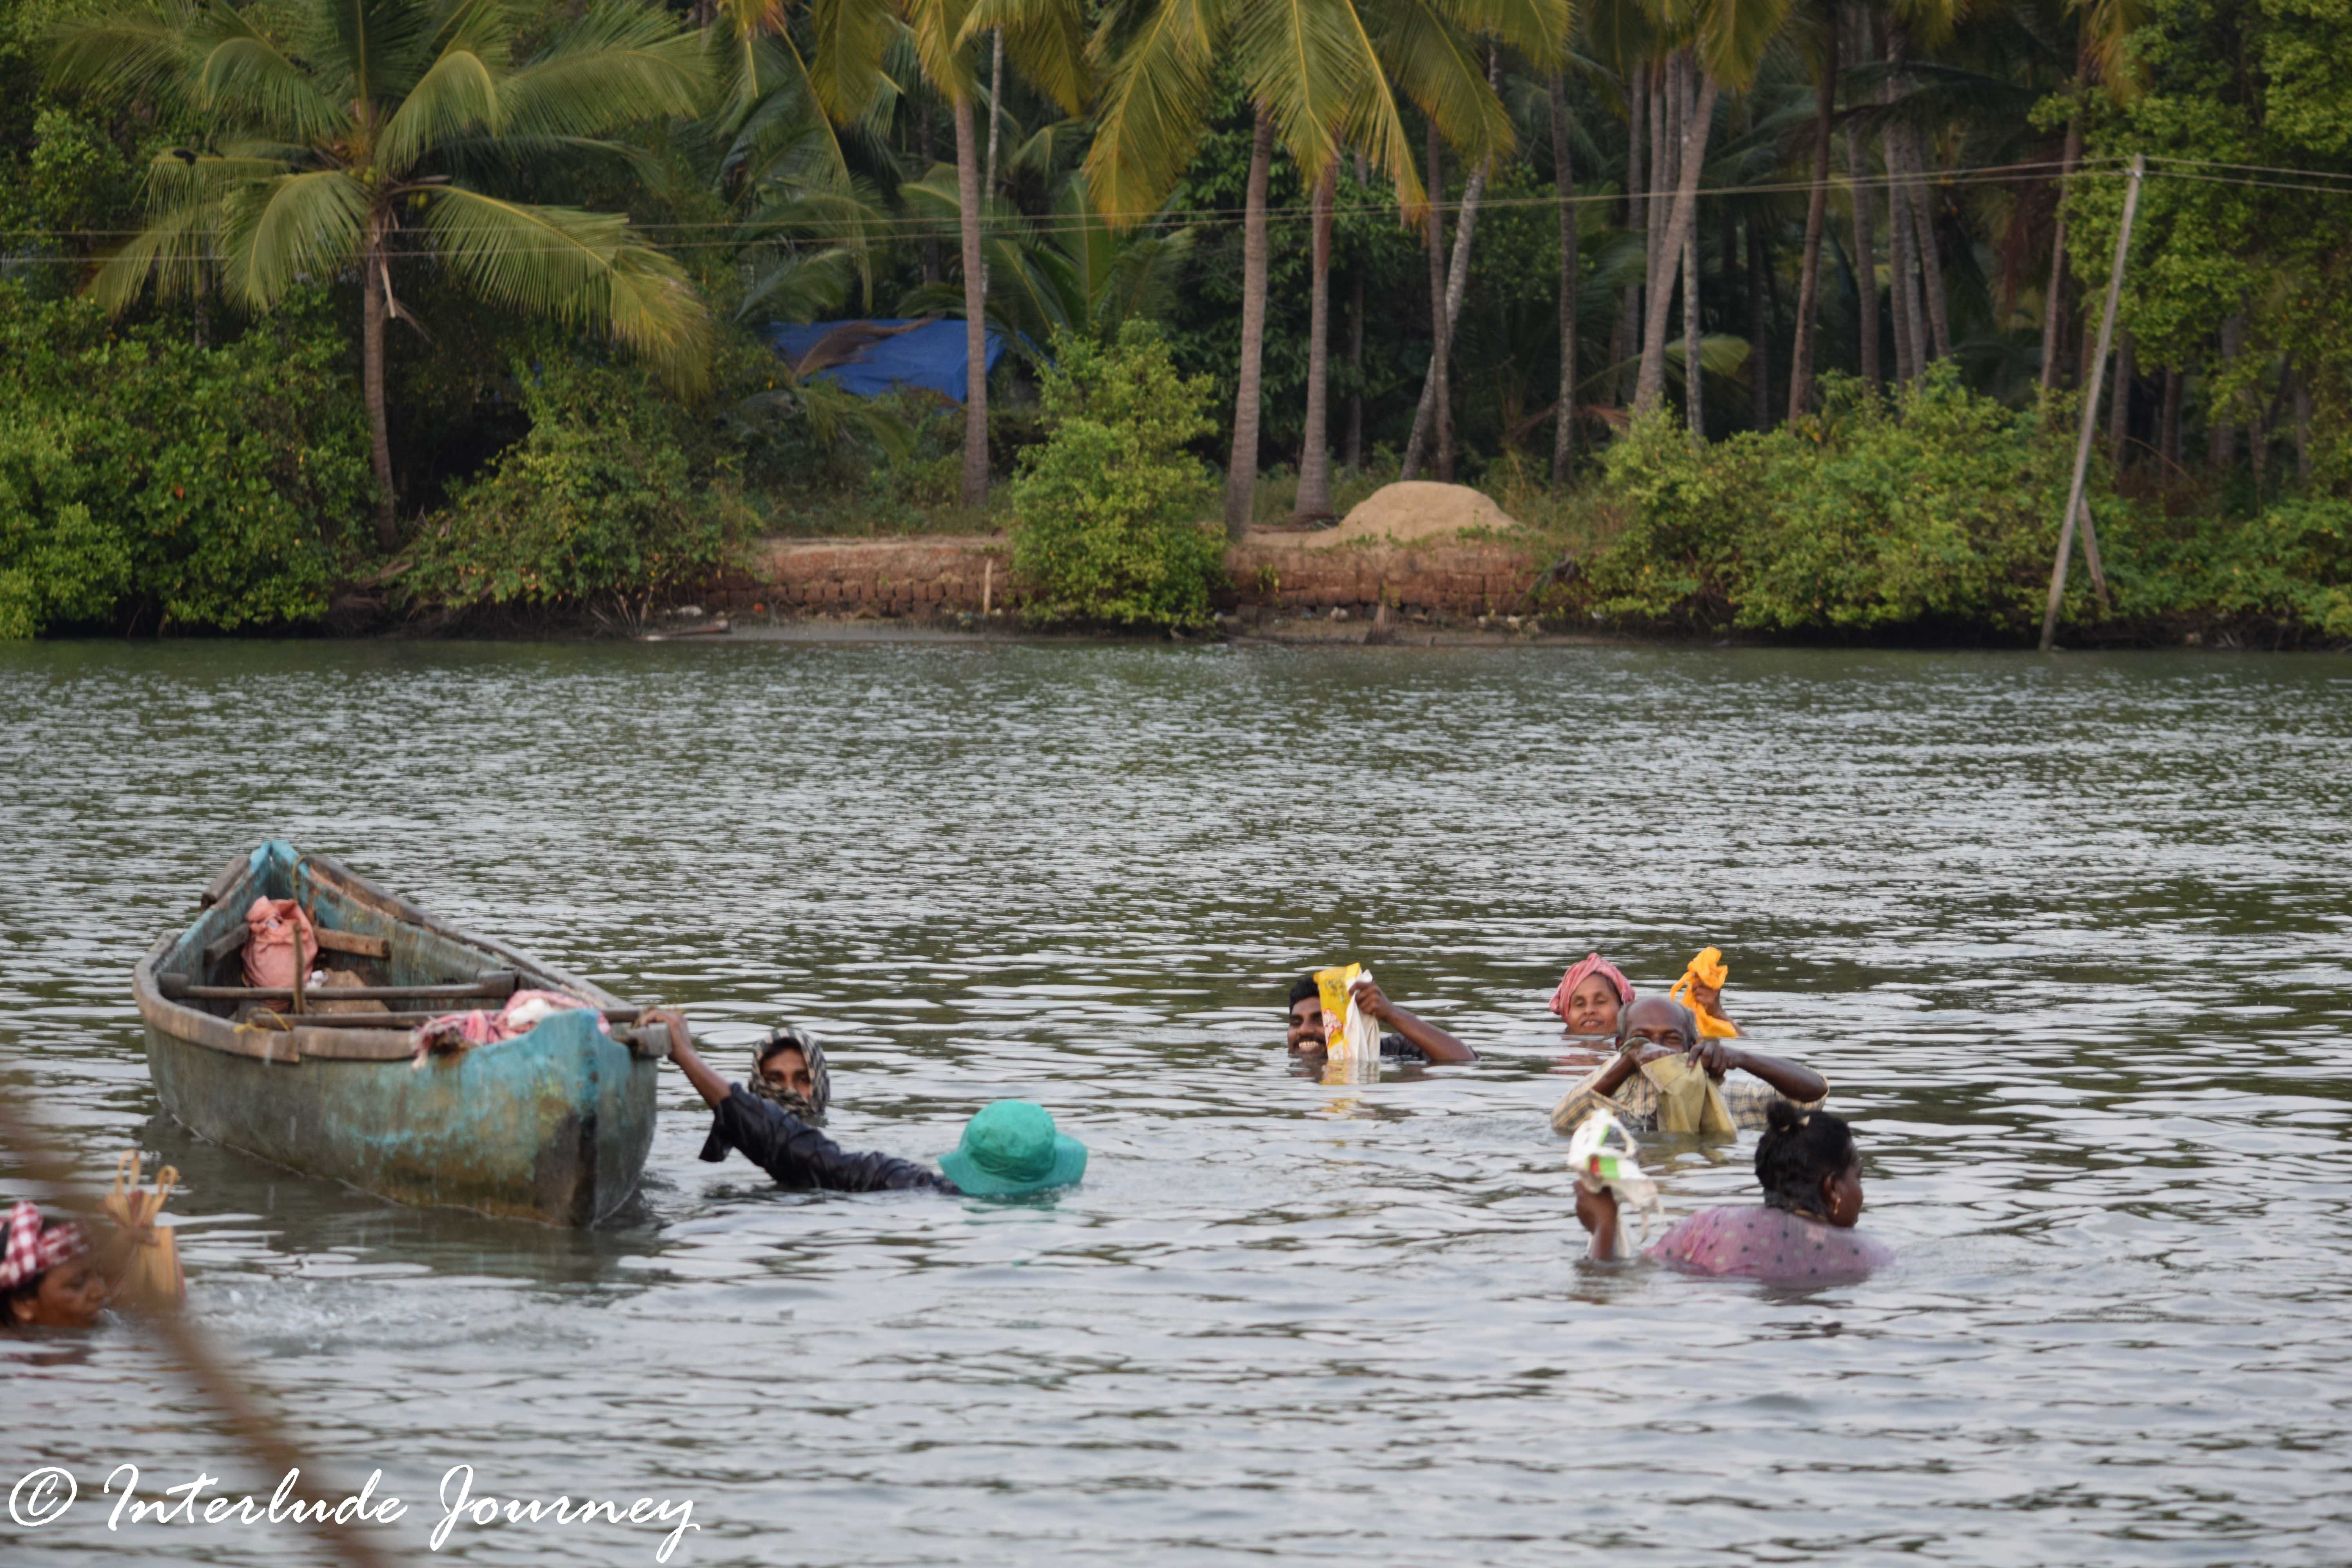 Fishing in backwaters, payyanur